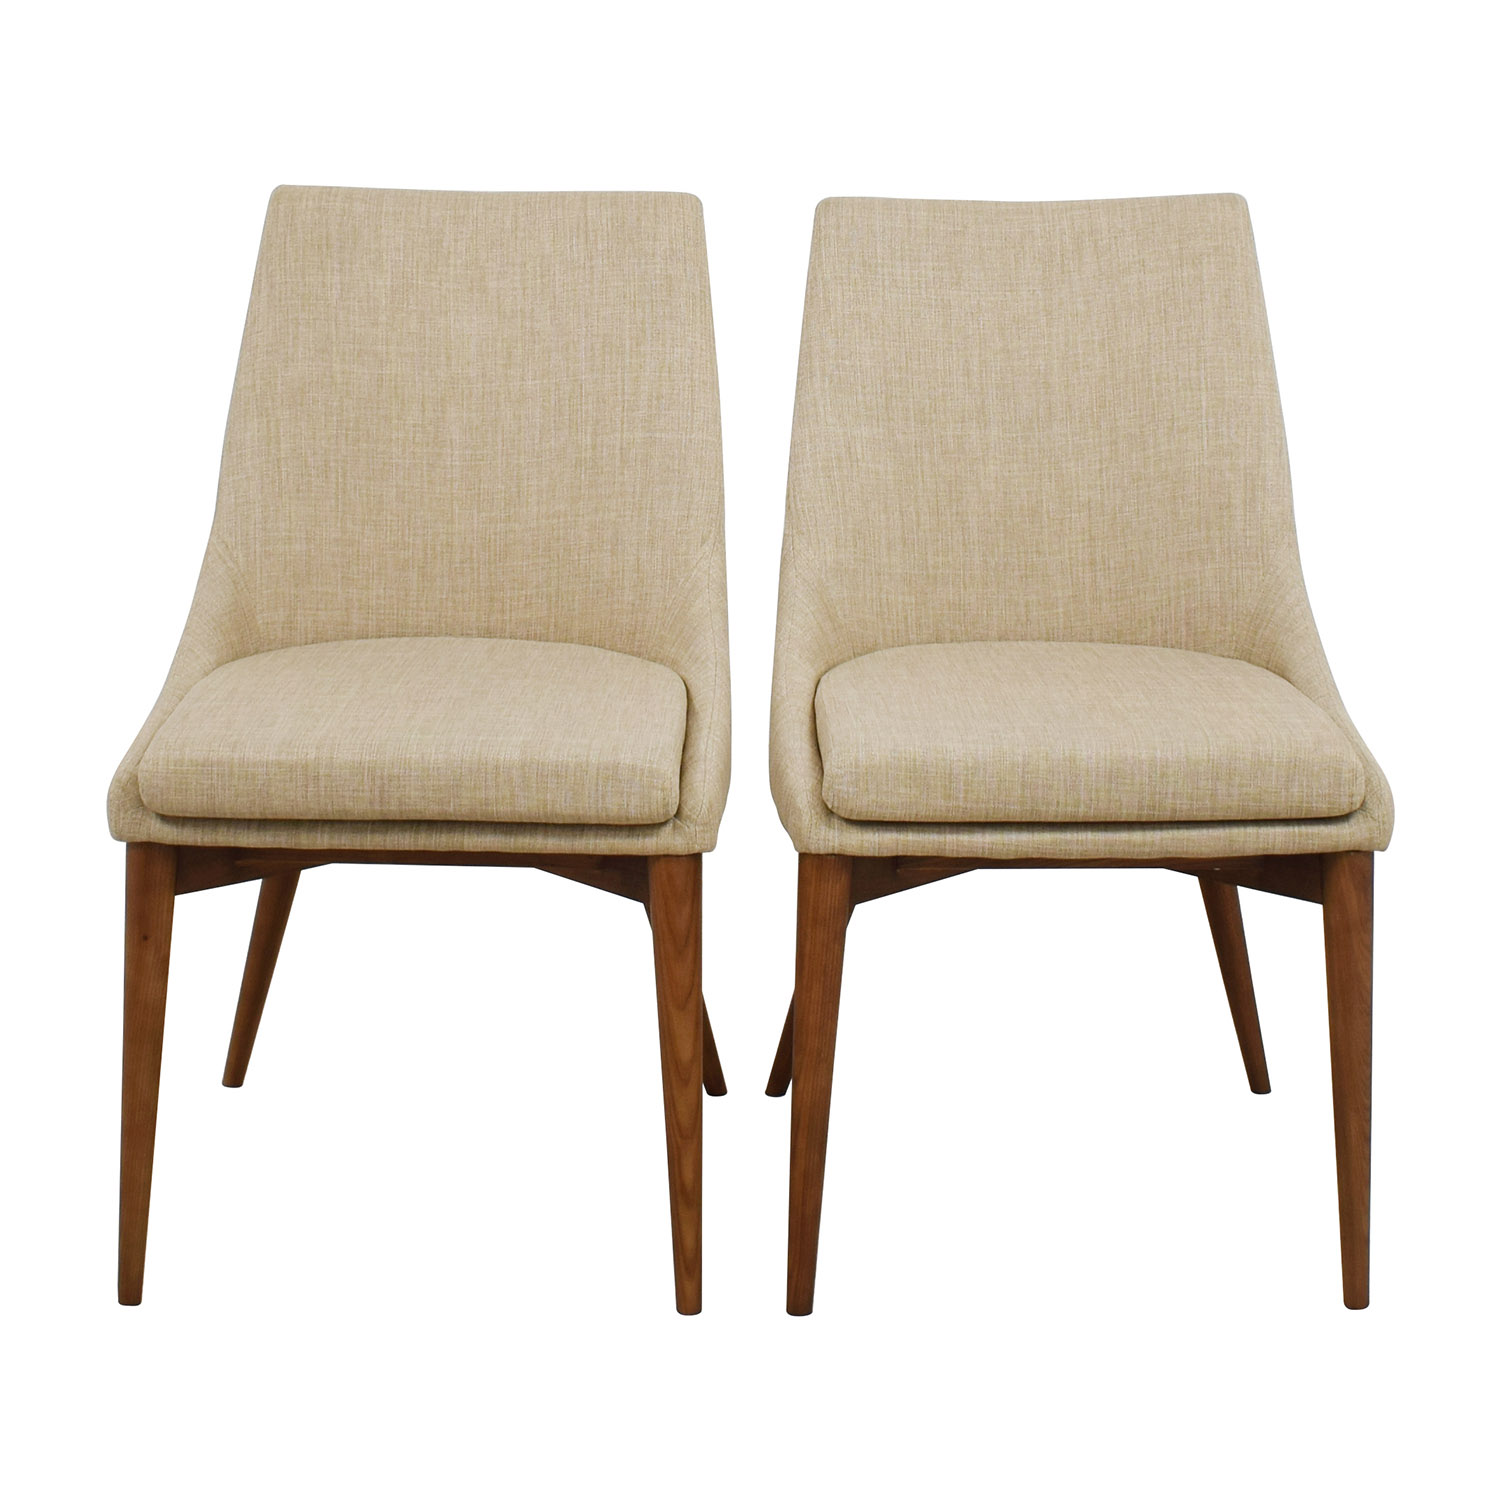 InMod Beige Calais Side Chairs / Accent Chairs